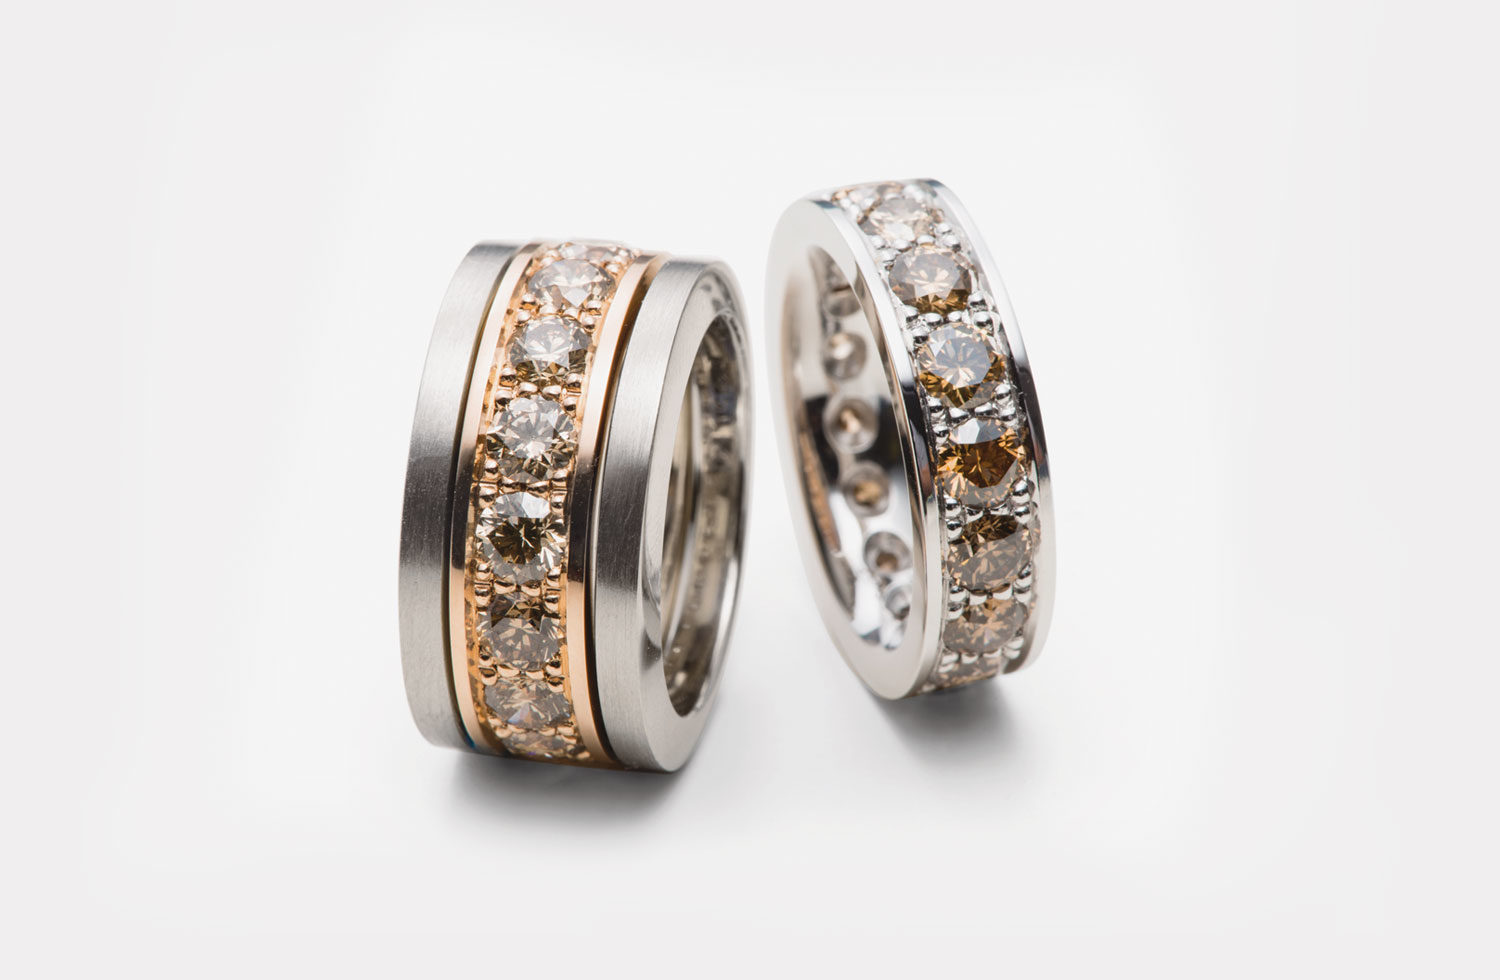 Ringe in Gold mit Diamanten